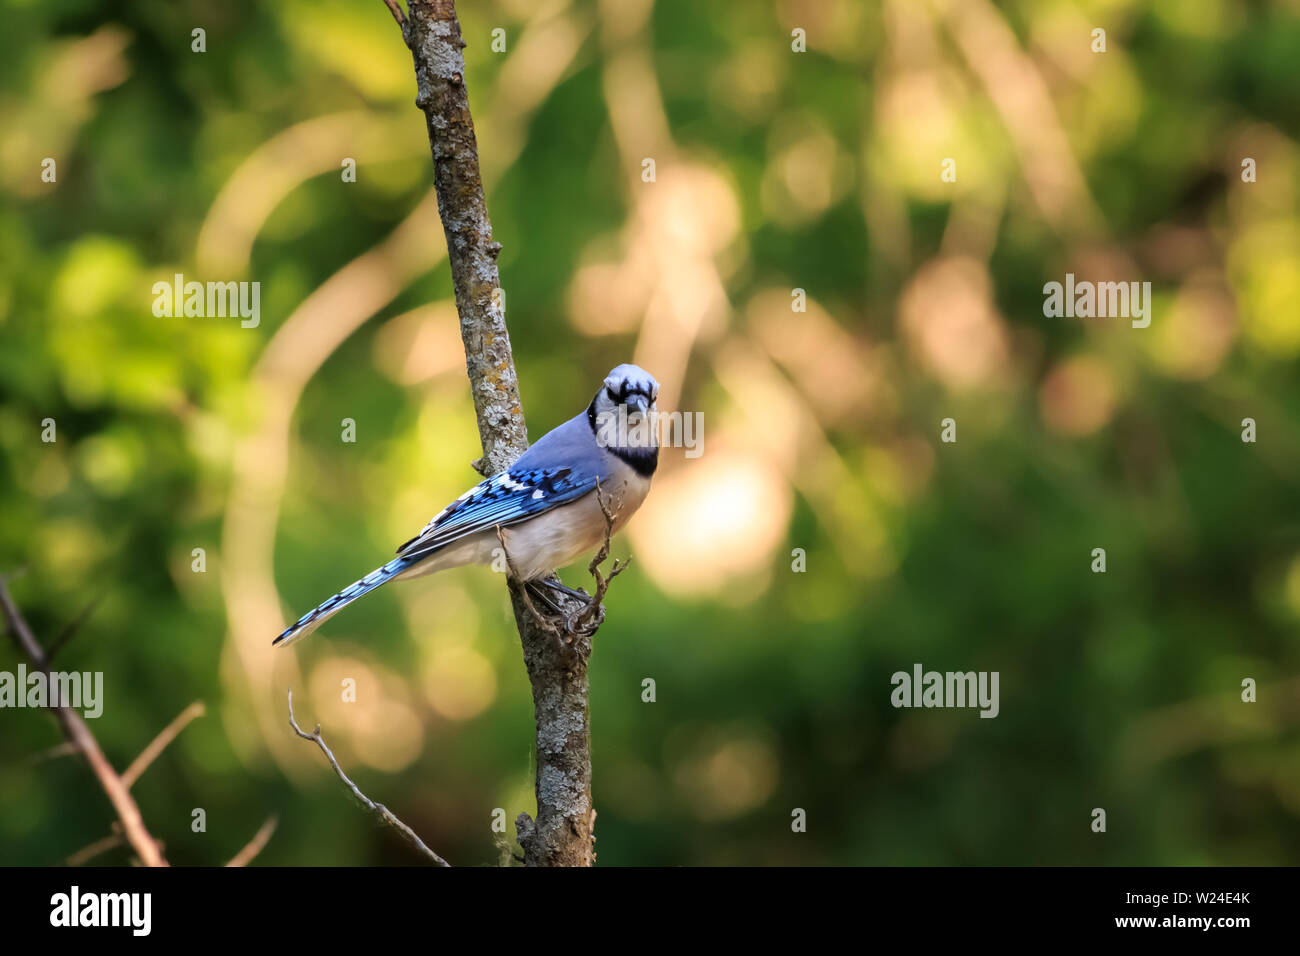 Blue Jay (Cyanocitta cristata) perched in a tree Stock Photo